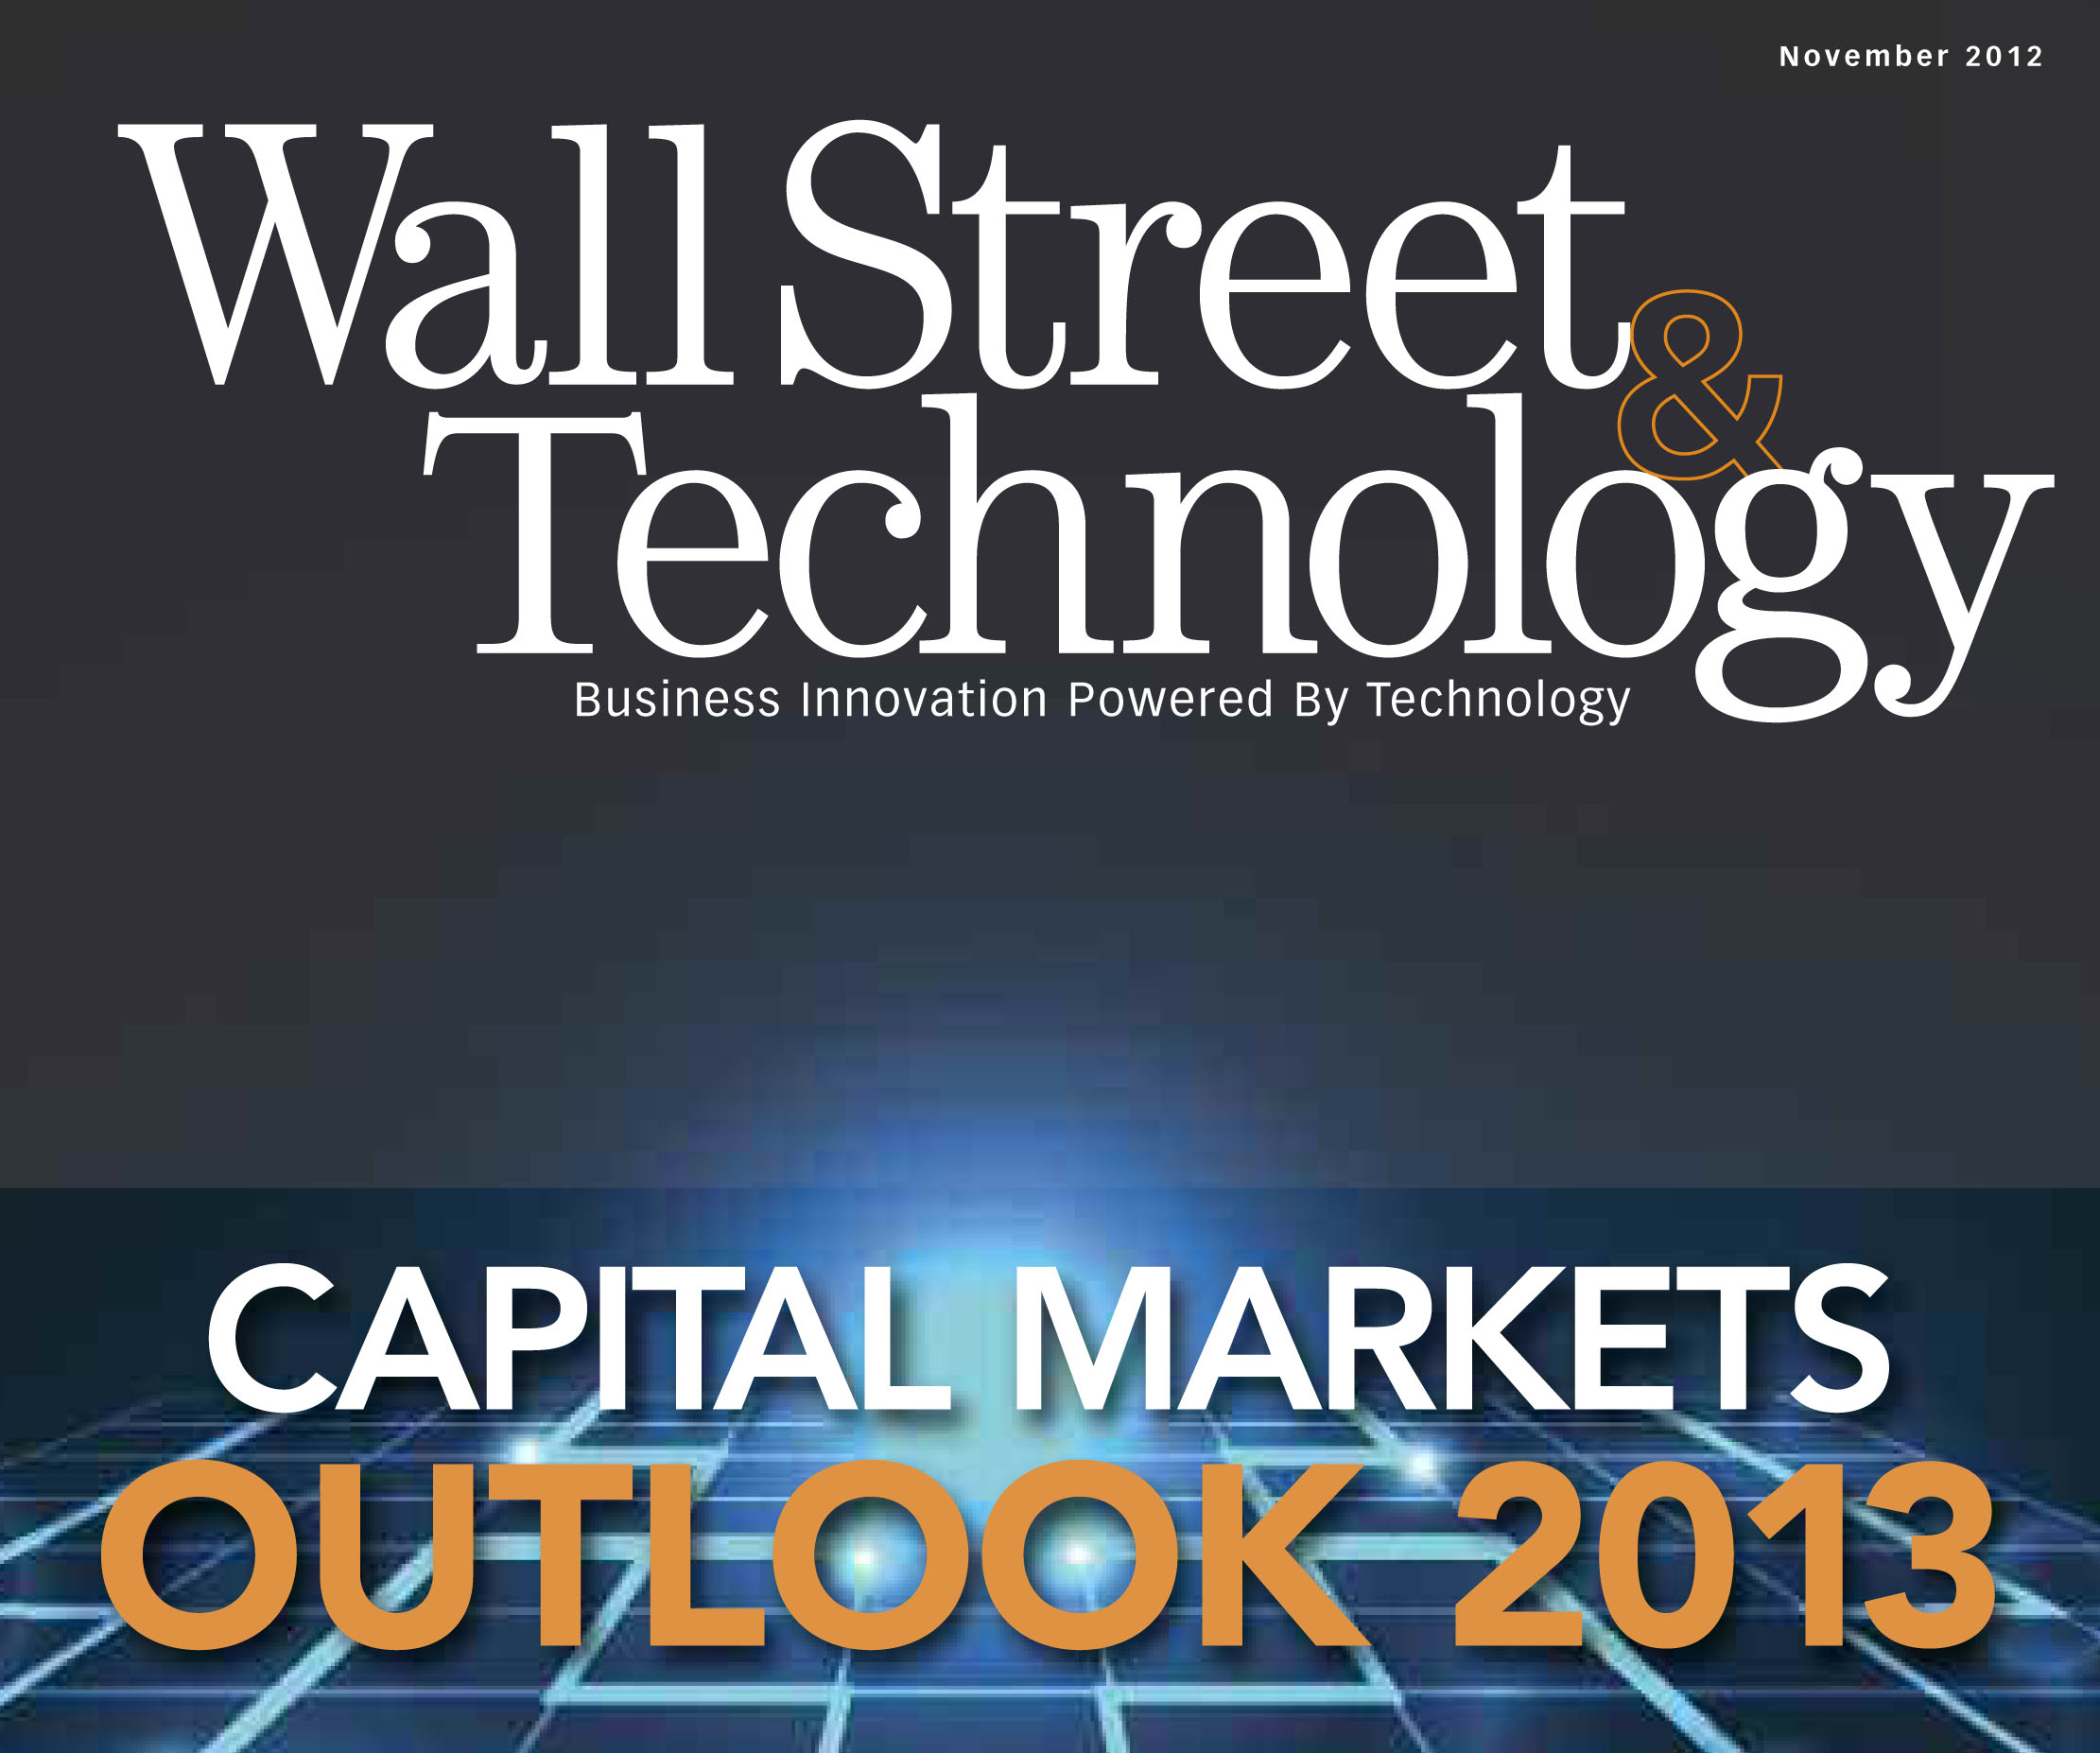 Capital Markets Outlook 2013